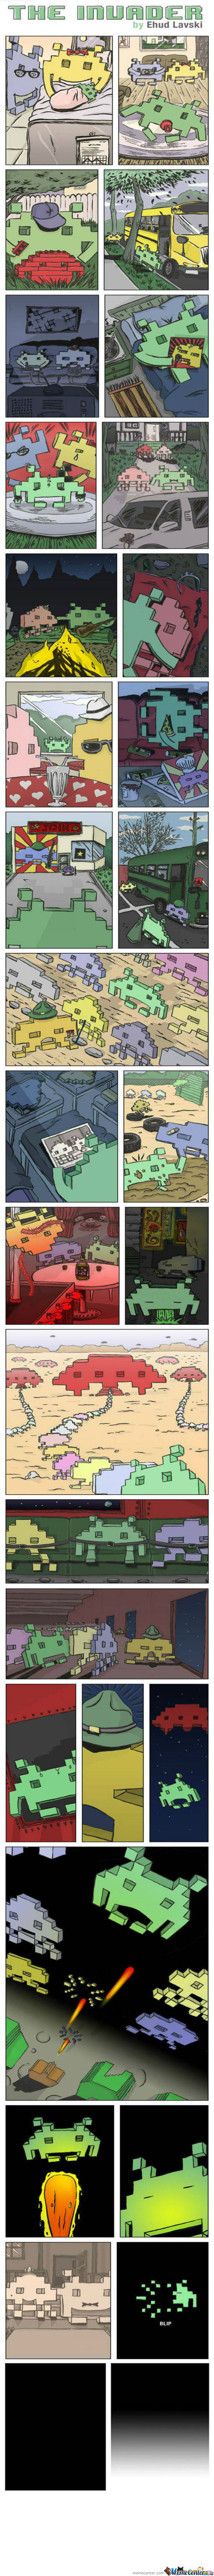 Space Invaders : The Untold Story